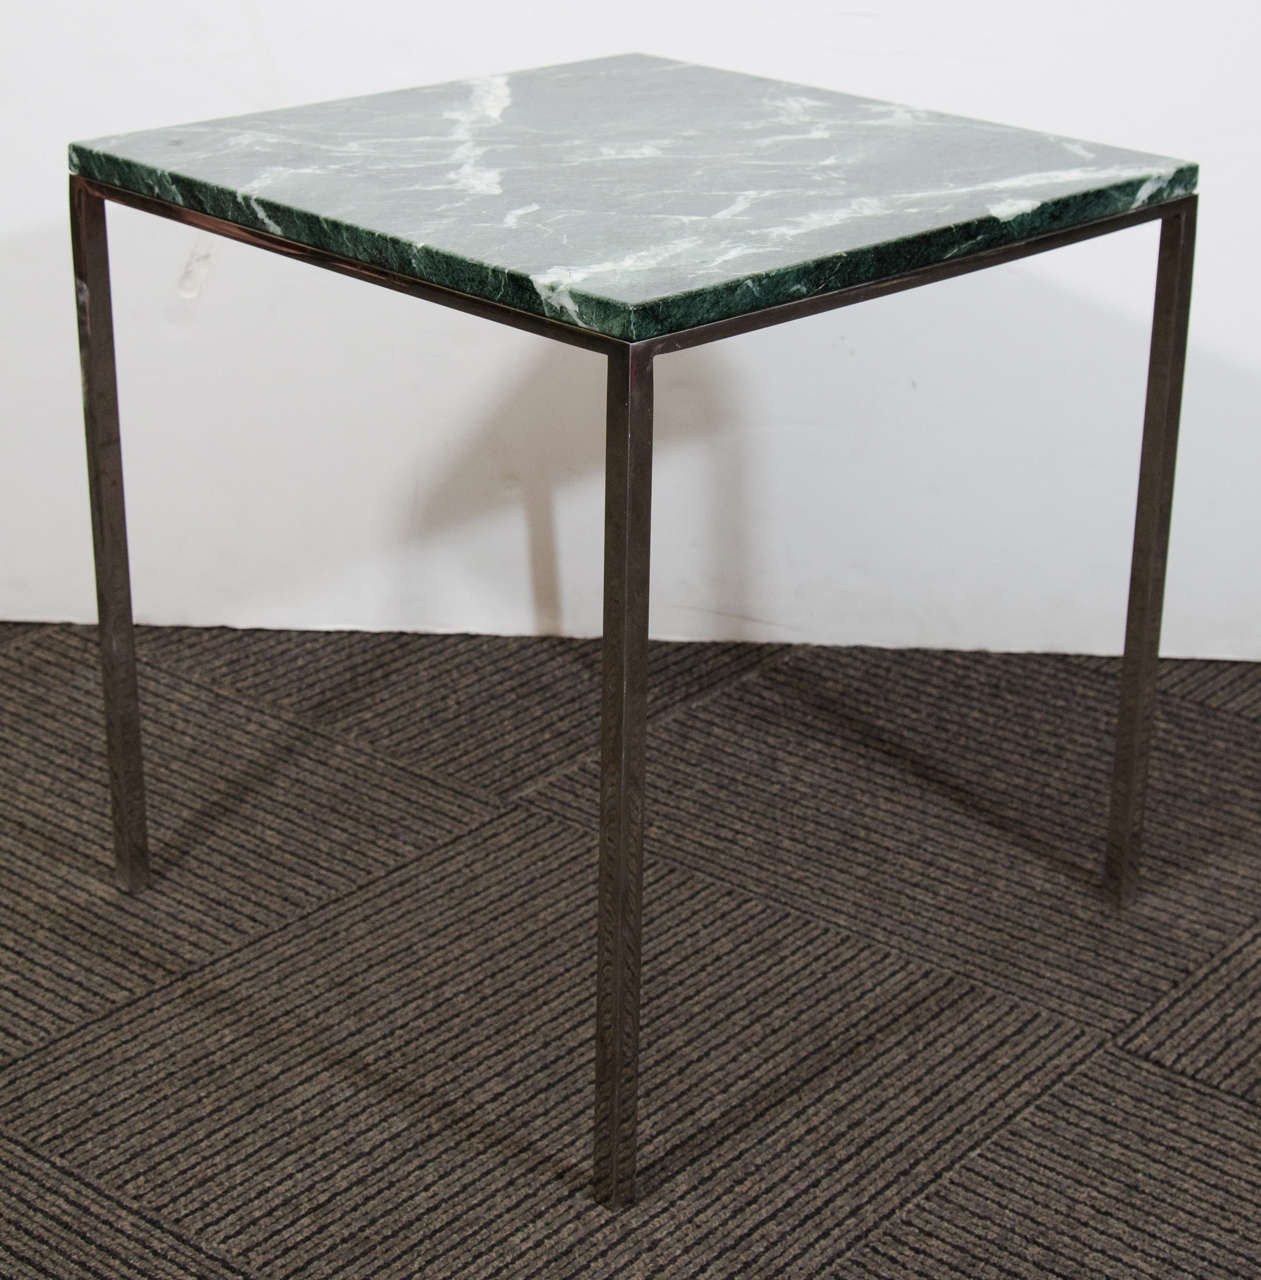 Fabulous Midcentury Knoll Square Side Table with Green Marble Top at 1stdibs BE21